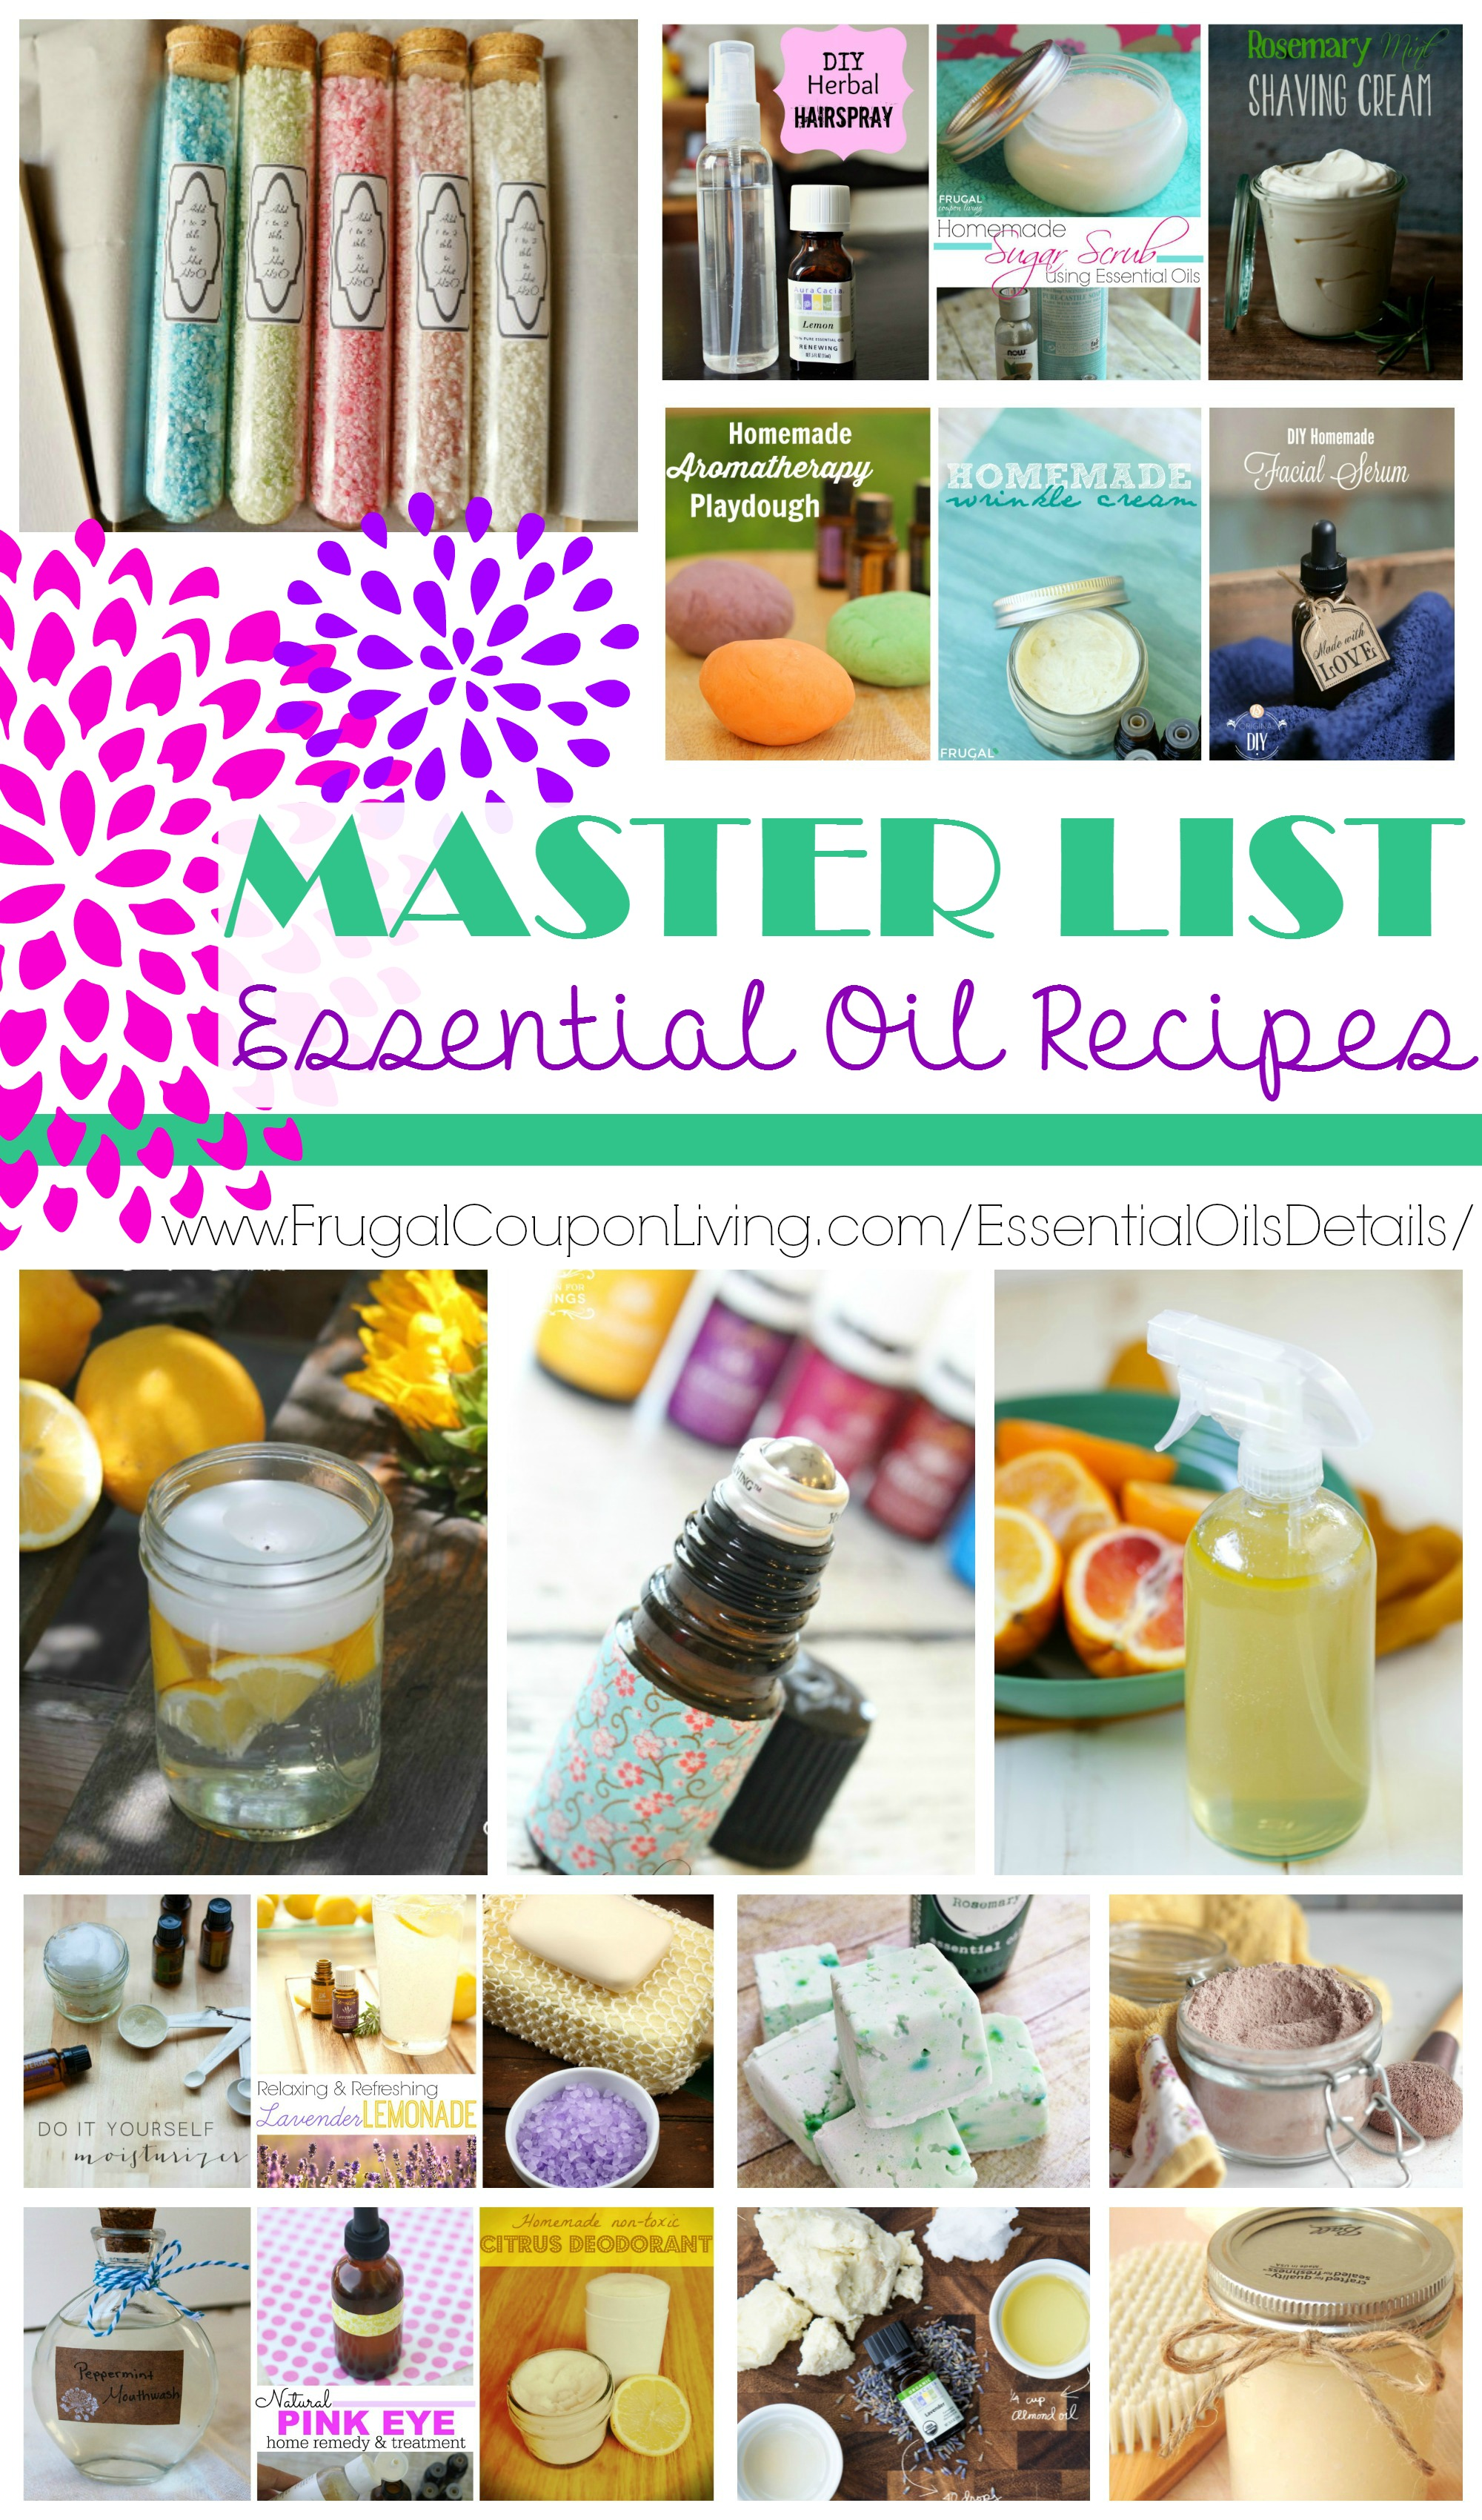 Master-List-Essential-Oil-Recipes-Collage-Frugal-Coupon-Living